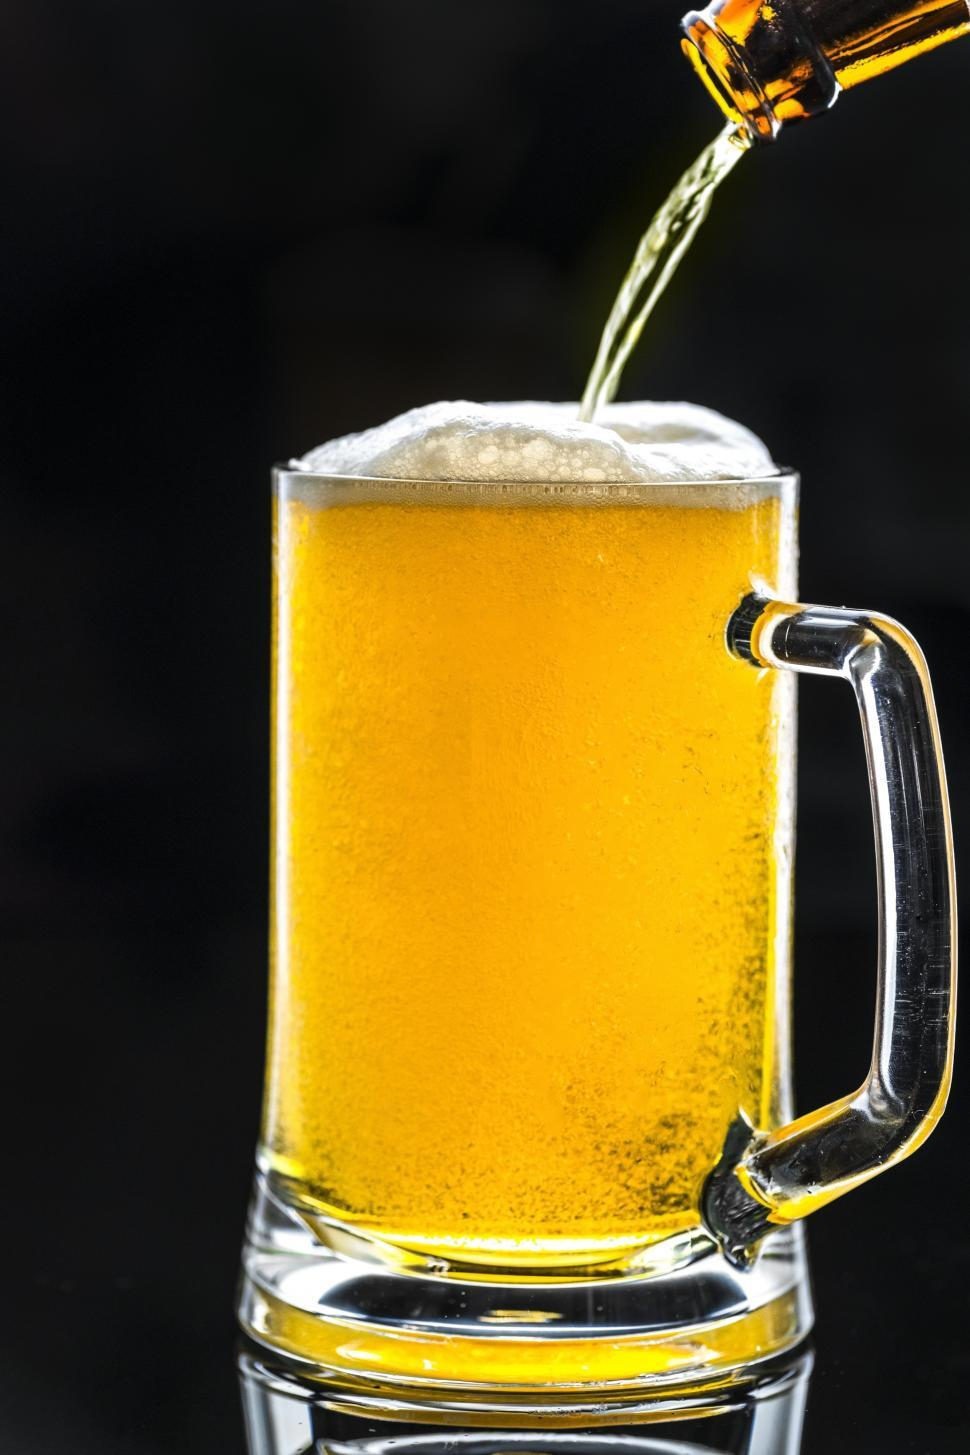 Download Free Stock HD Photo of Beer being poured into a pint mug Online